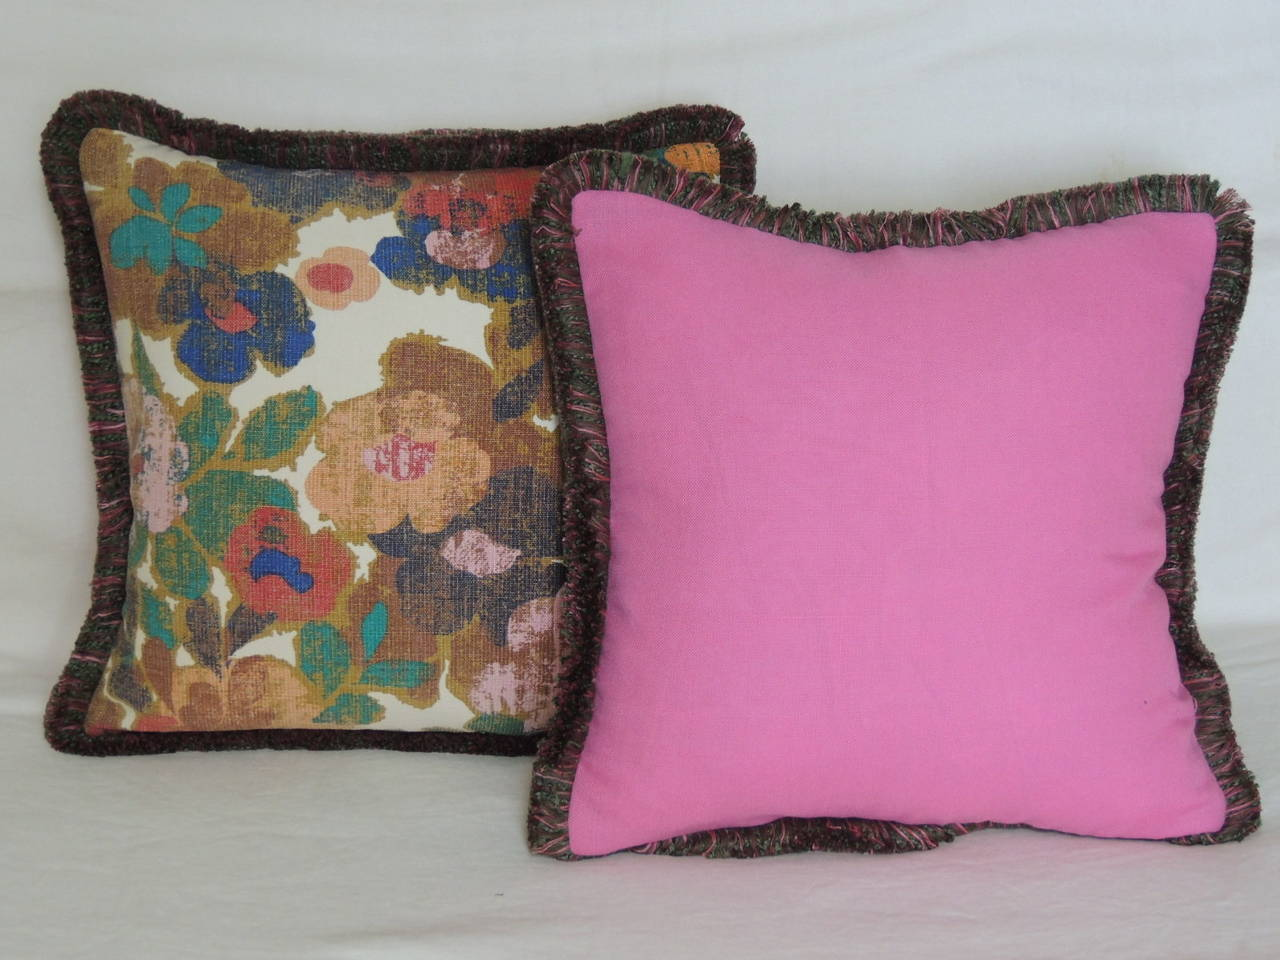 Decorative Pillows With Fringe Part - 46: Vintage Pair Of Modern Bright Floral Linen Decorative Pillows With Moss  Fringe 3